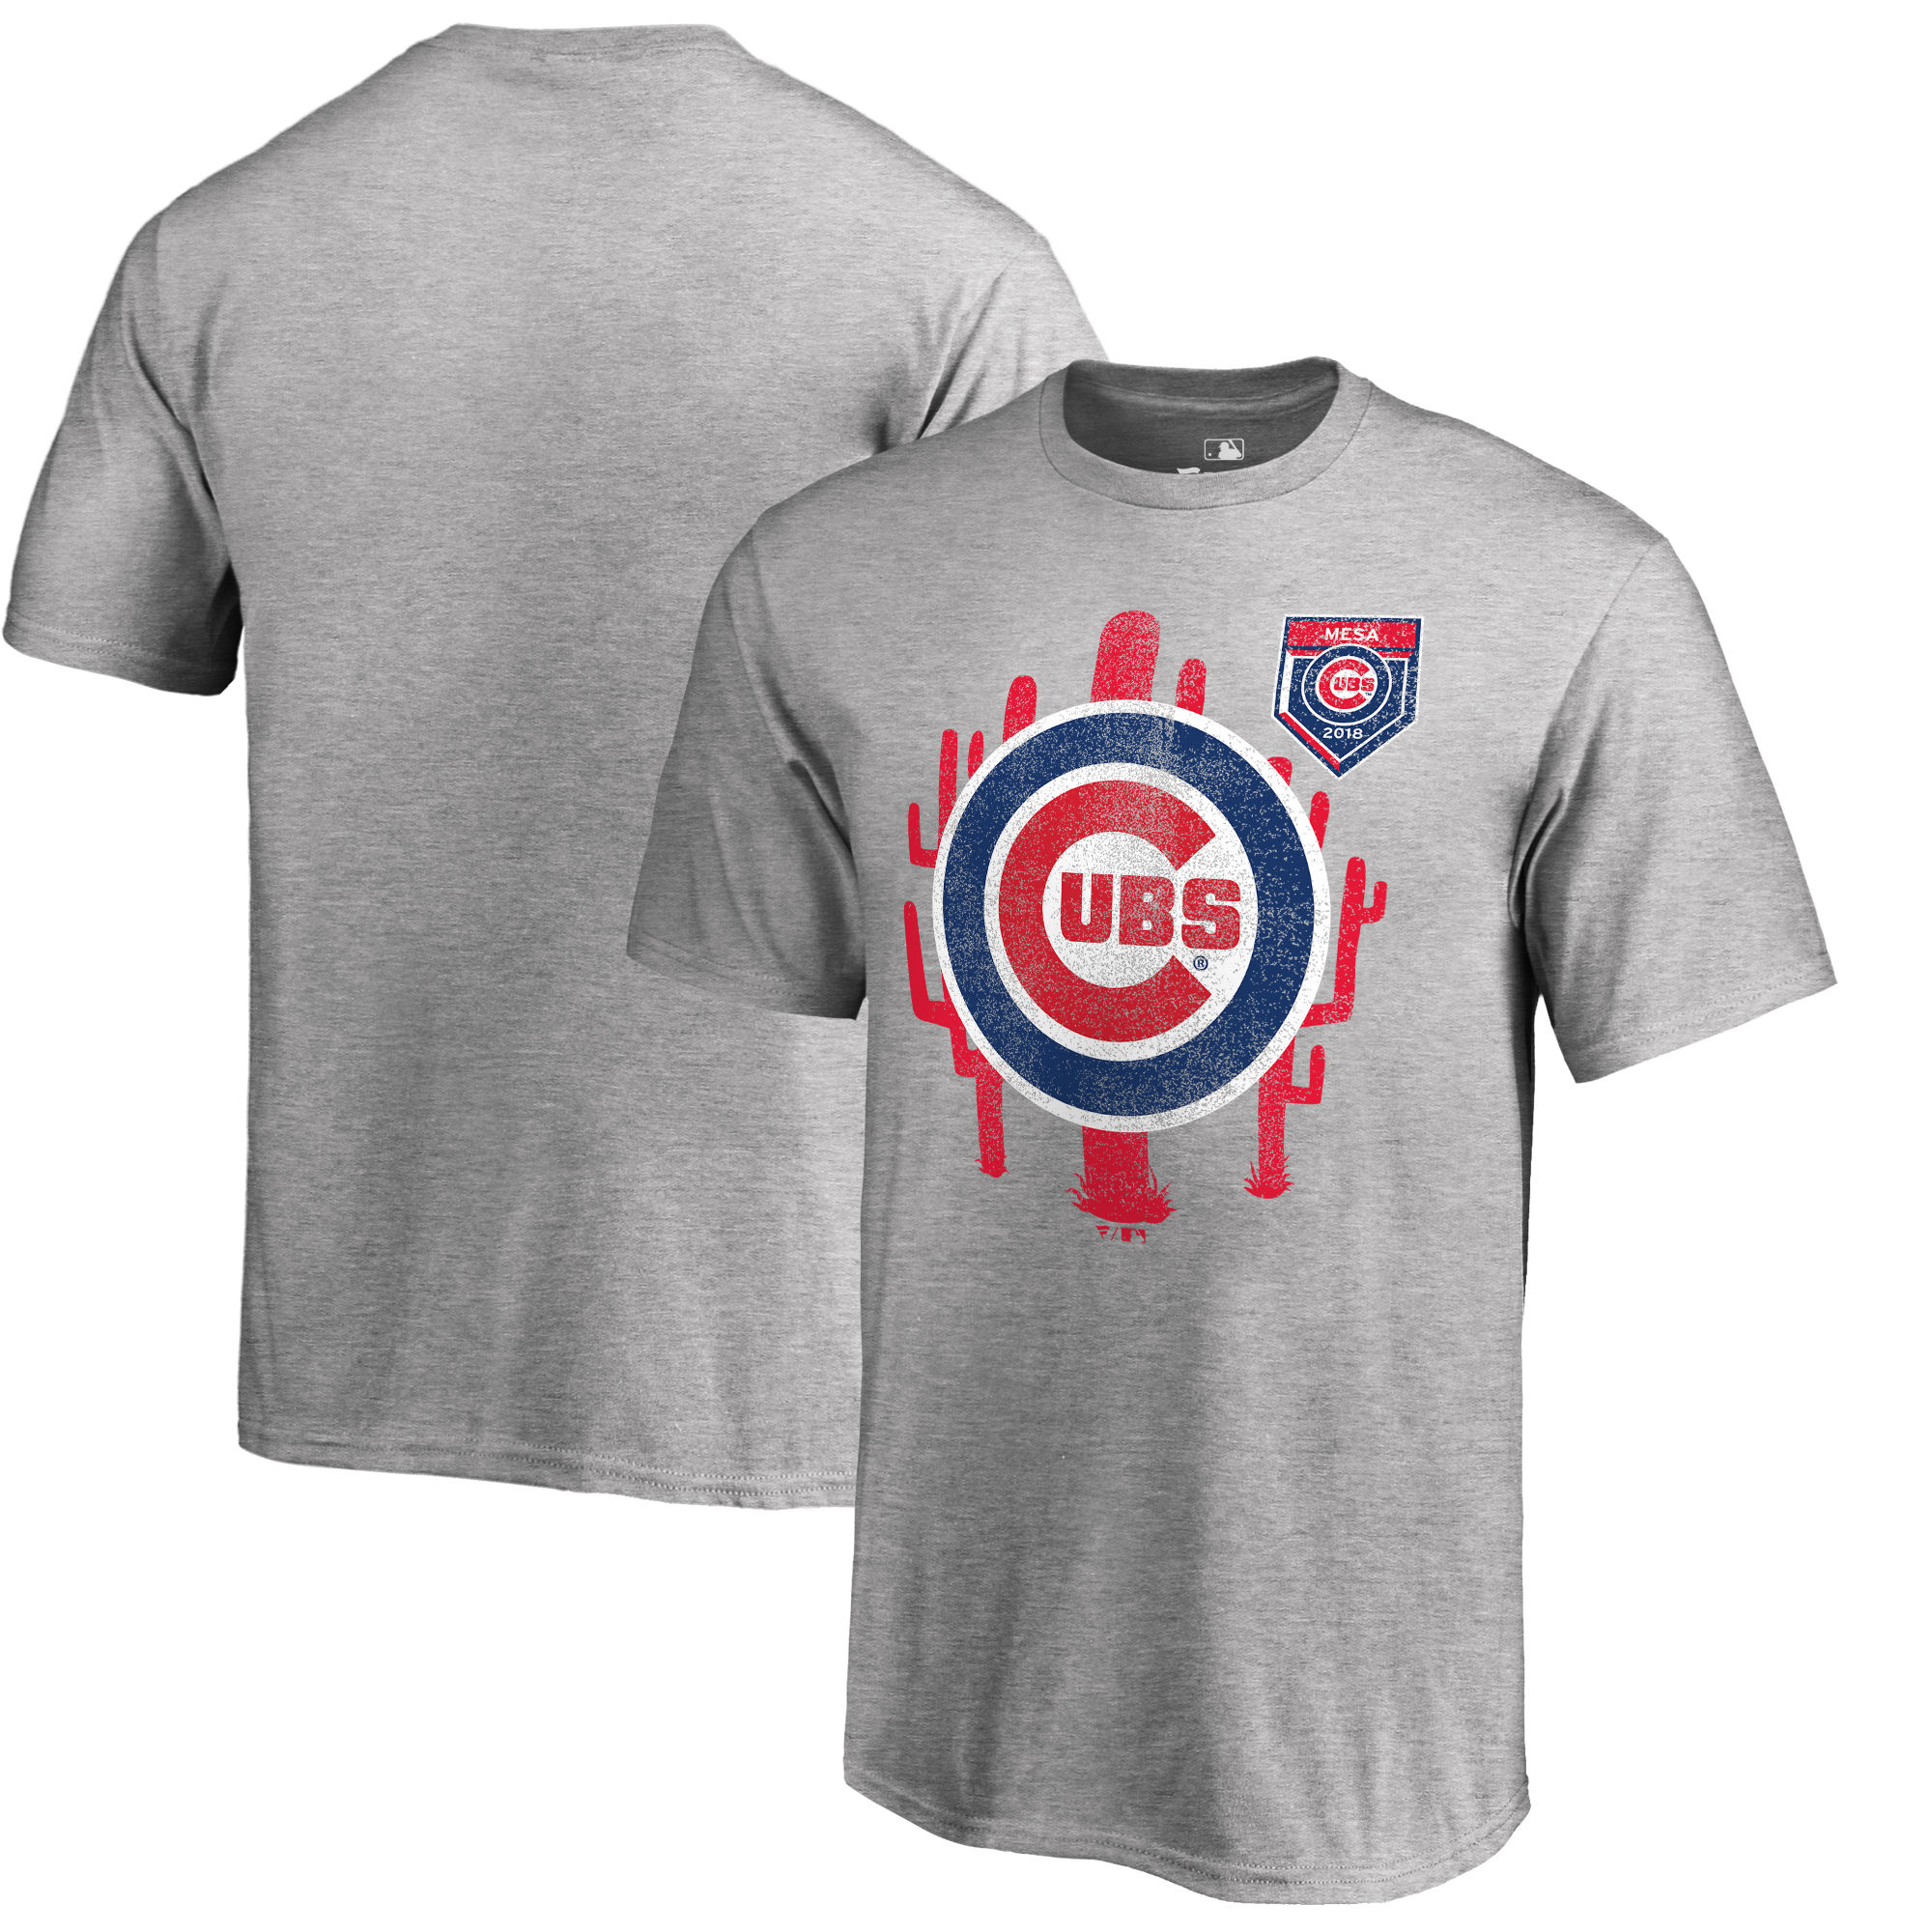 Men's Chicago Cubs Fanatics Branded 2018 MLB Spring Training Vintage T-Shirt – Heather Gray